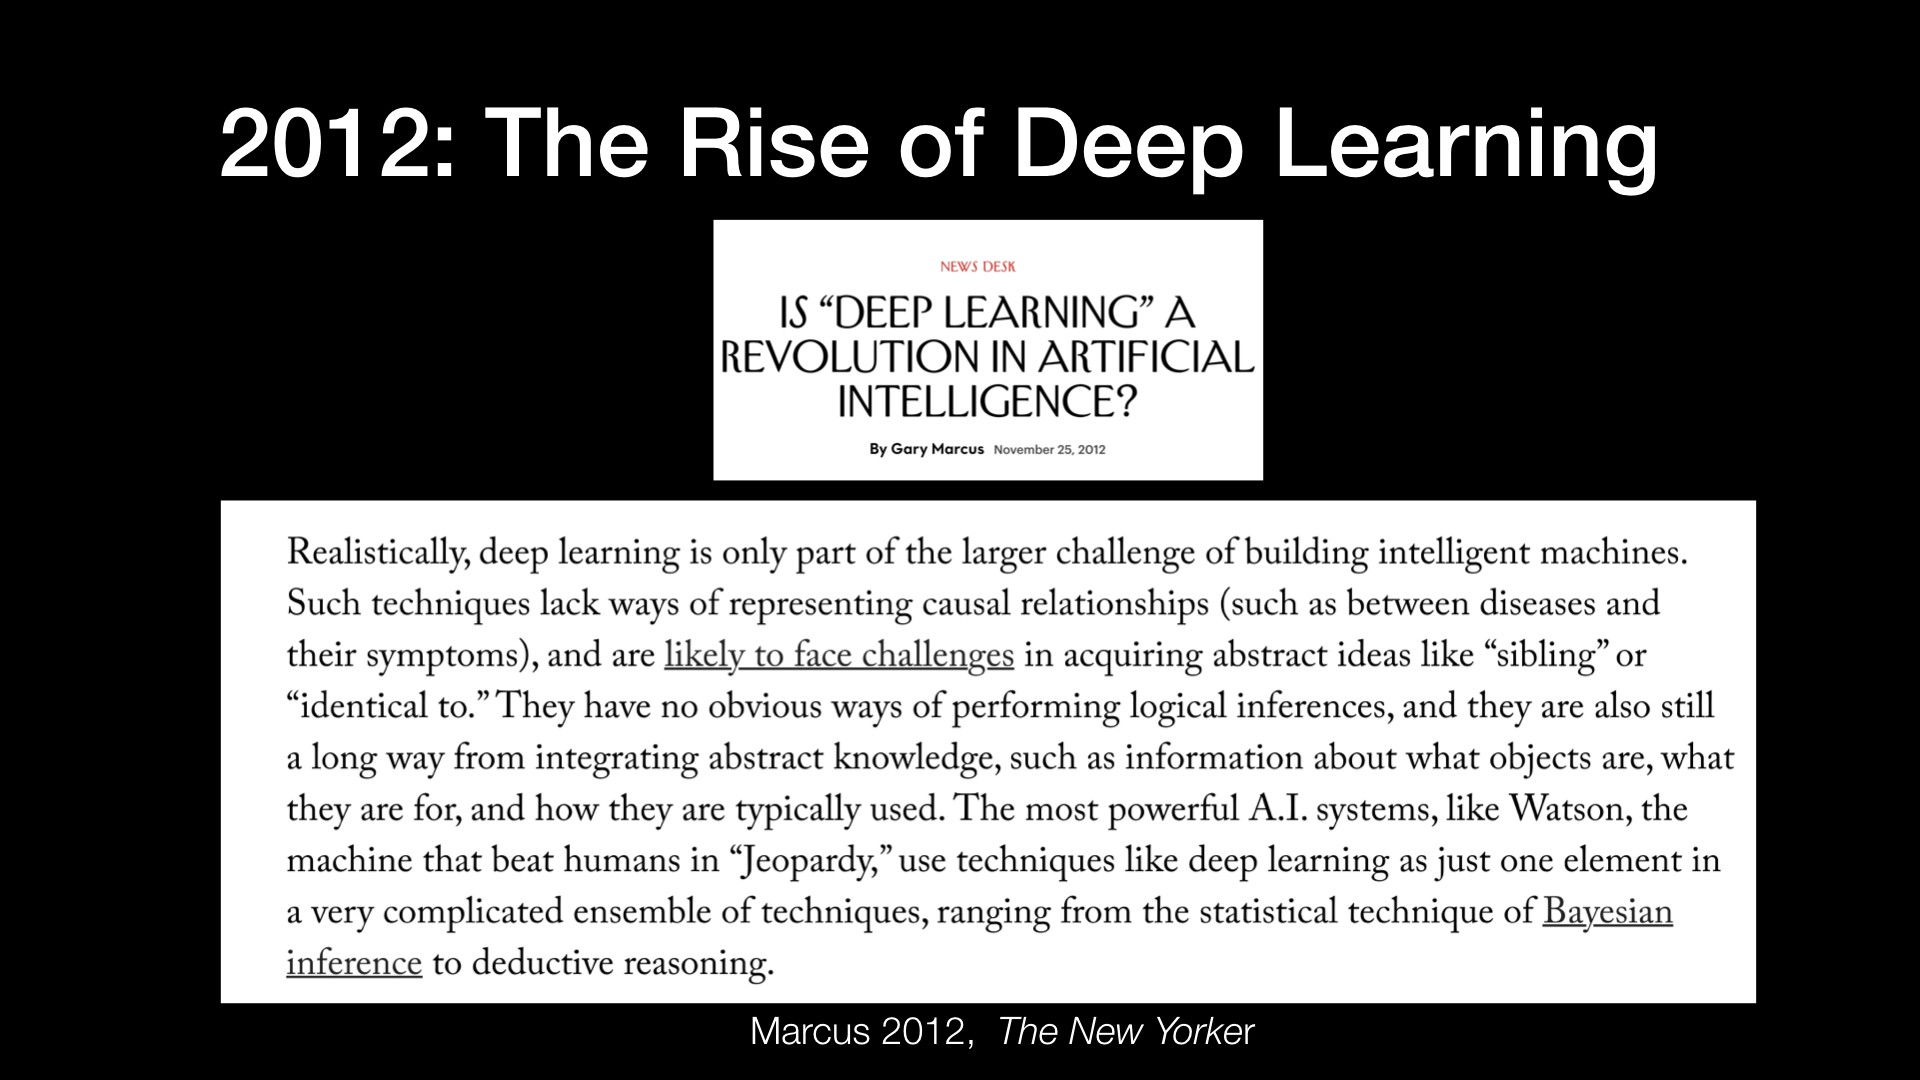 2012: The Rise of Deep Learning